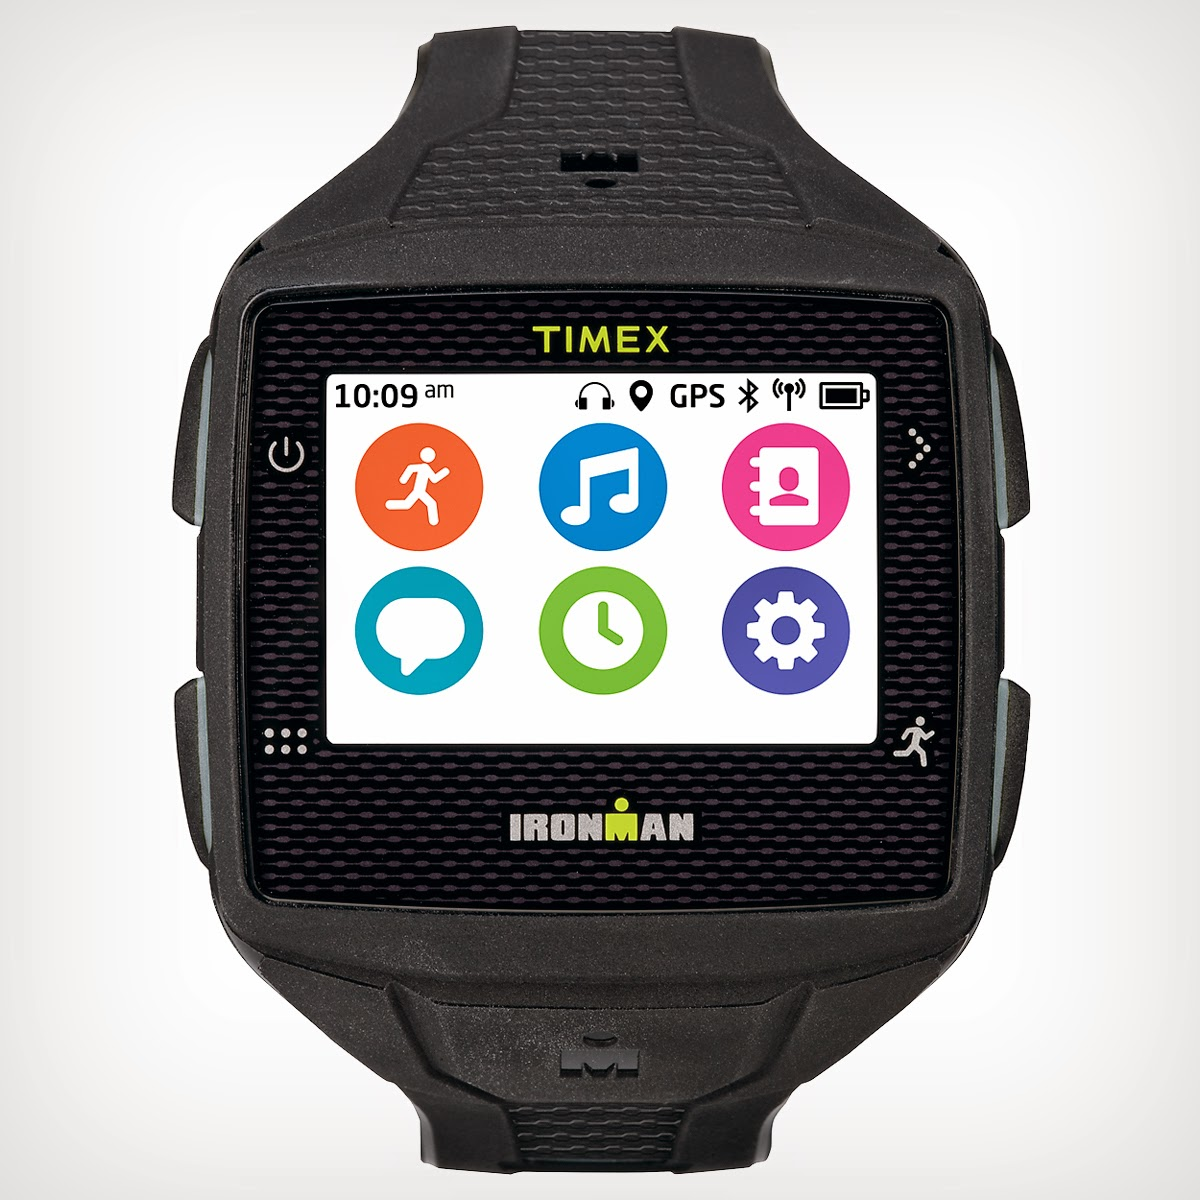 Timex, Ironman One GPS+, Ironman One GPS+ Smartwatch, smartwatch, Timex Ironman One GPS+, Smartwatch no smartphone, T mobile, Ironman One, new tech, mobile, Timex Smartwatch,